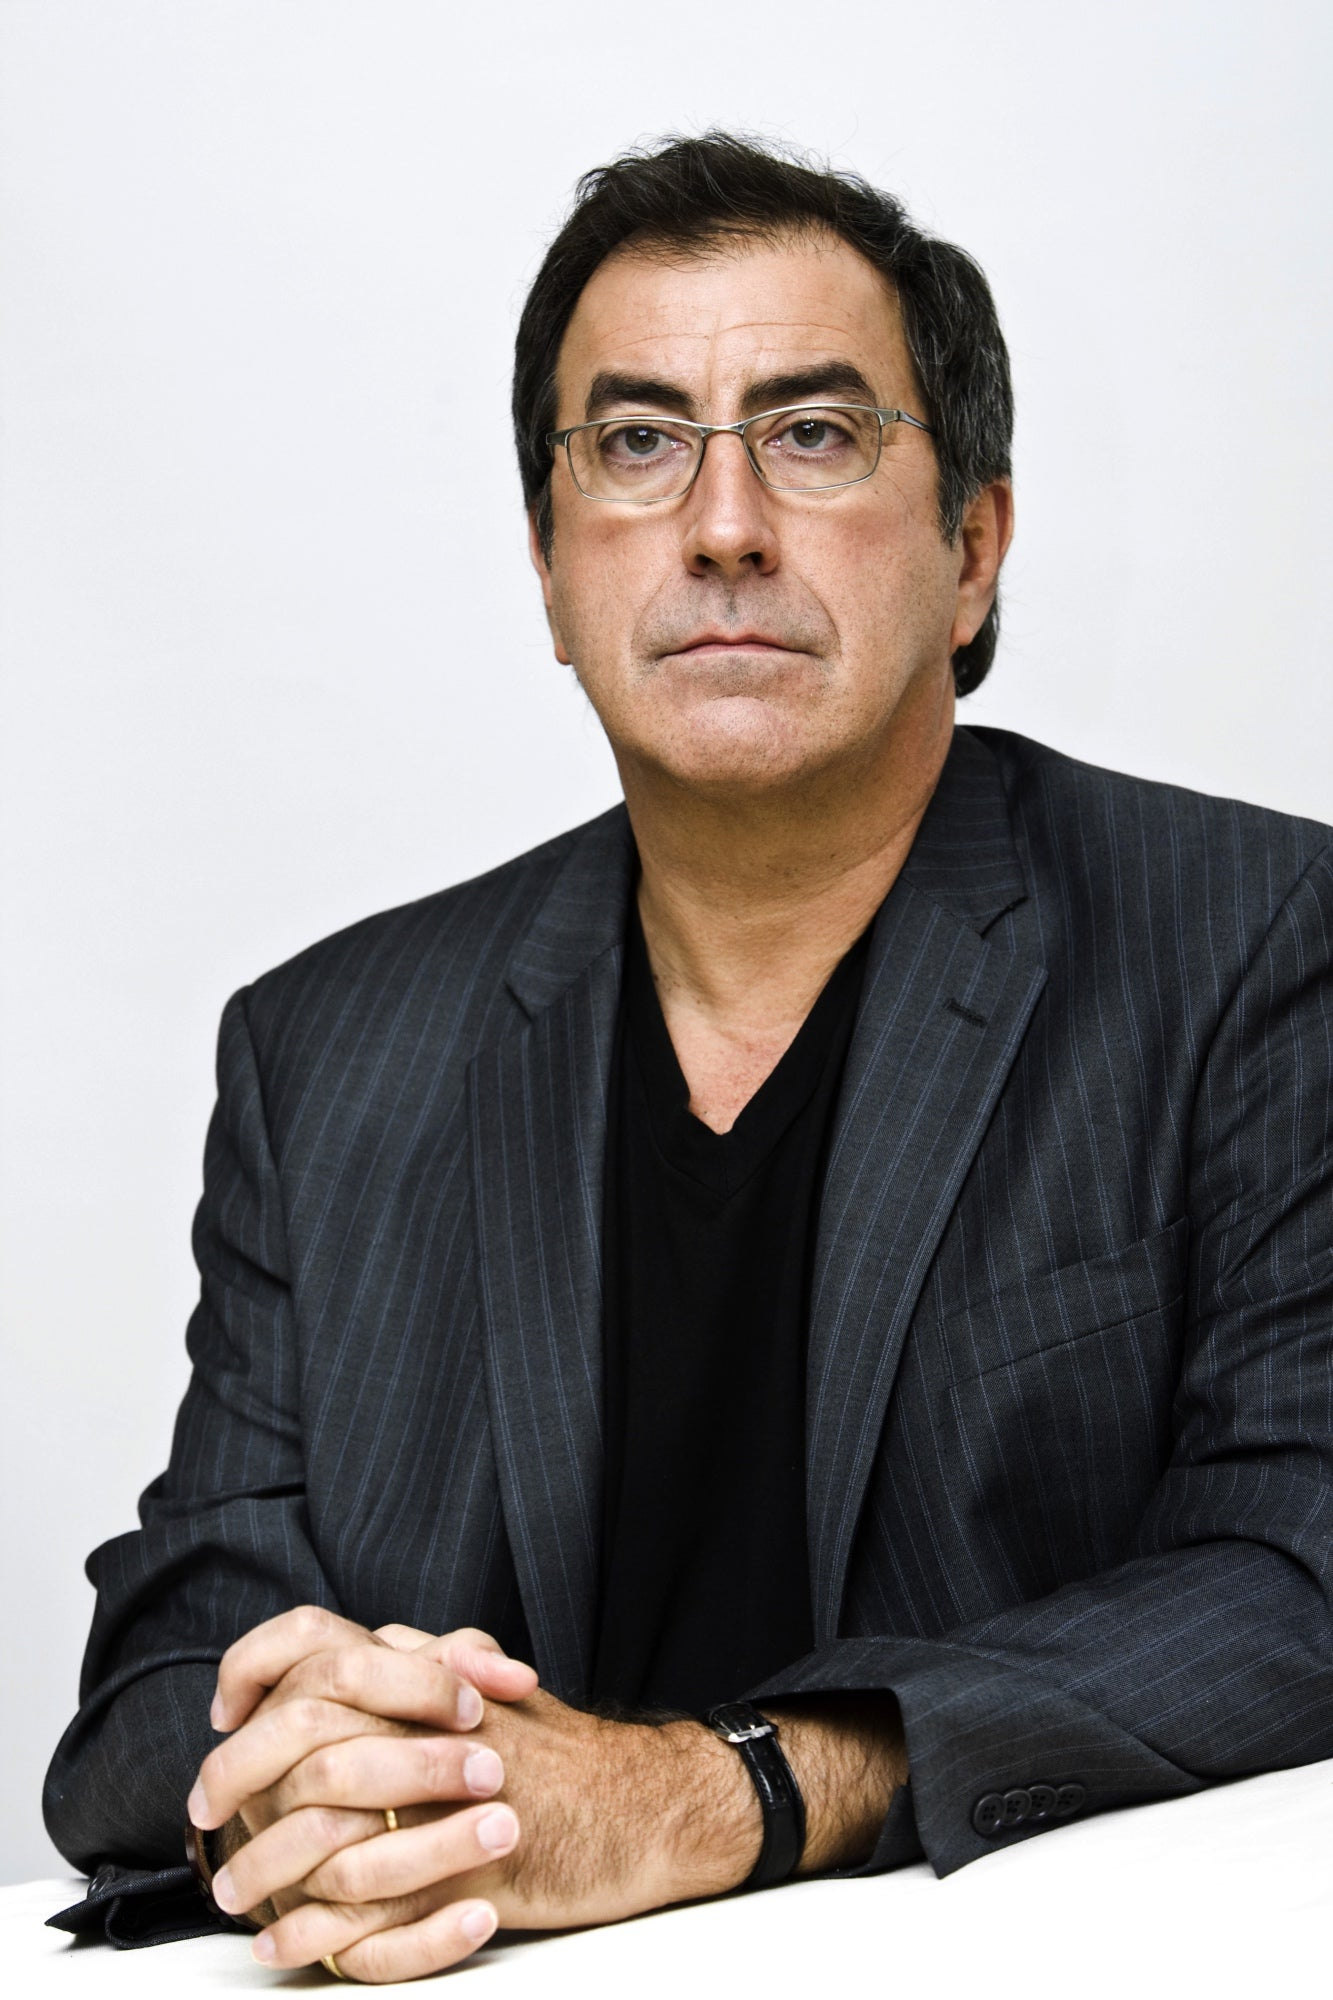 Diector and choreographer Kenny Ortega, 2020